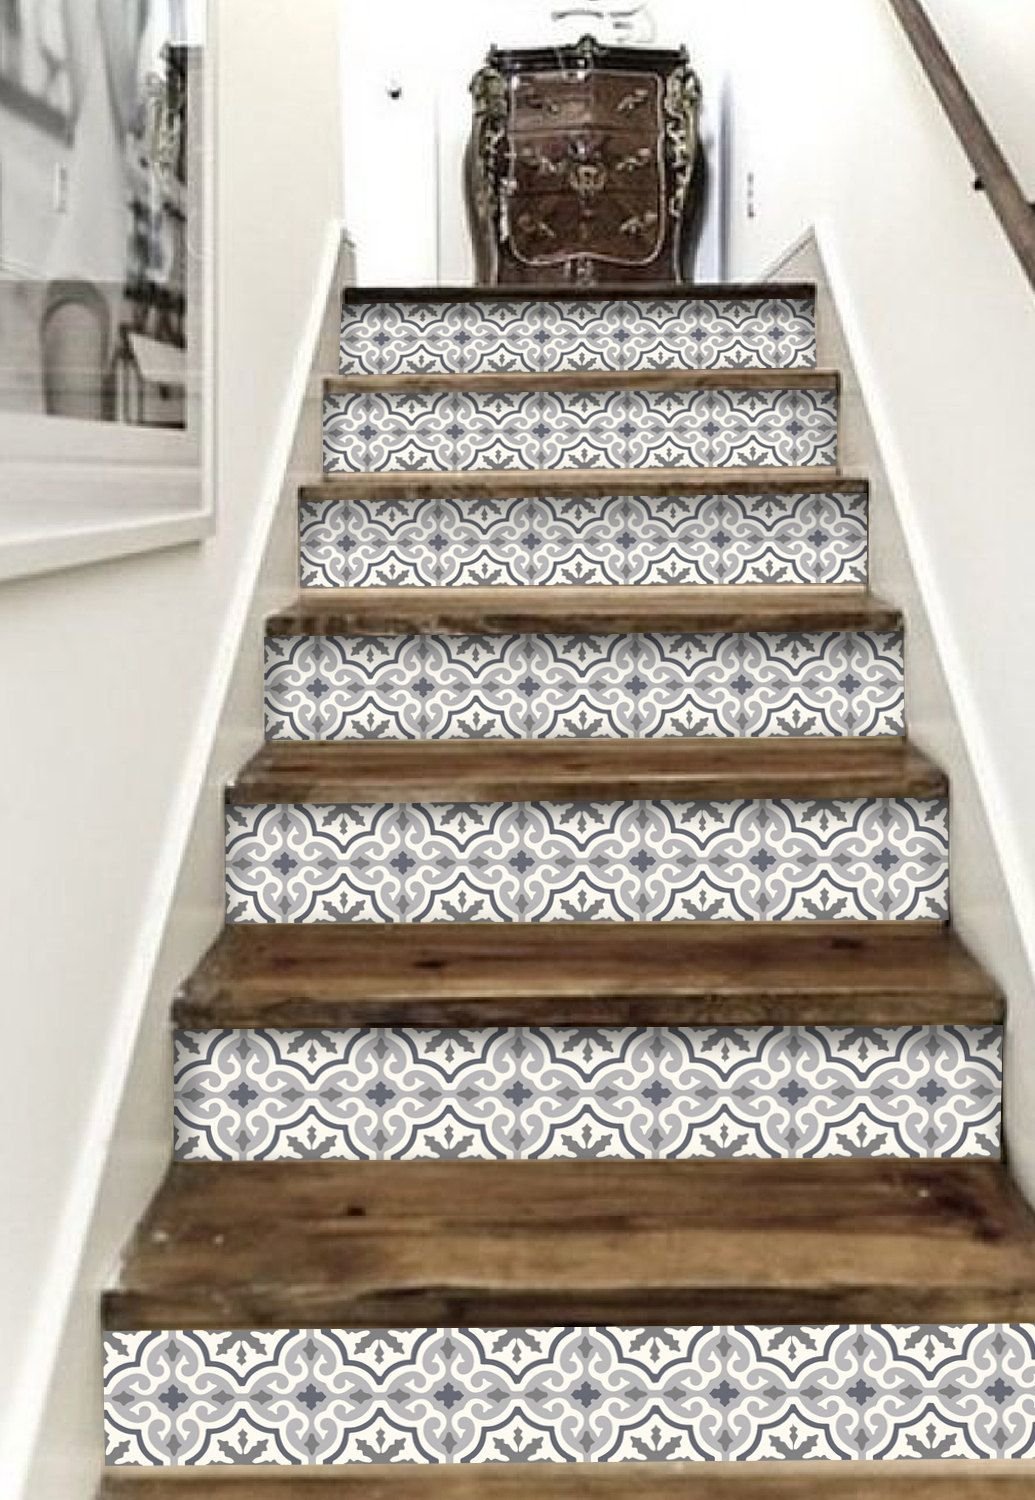 Stair Riser Vinyl Strips 15 Steps Removable Sticker Peel Etsy Stair Riser Vinyl Home Decor Easy Home Decor